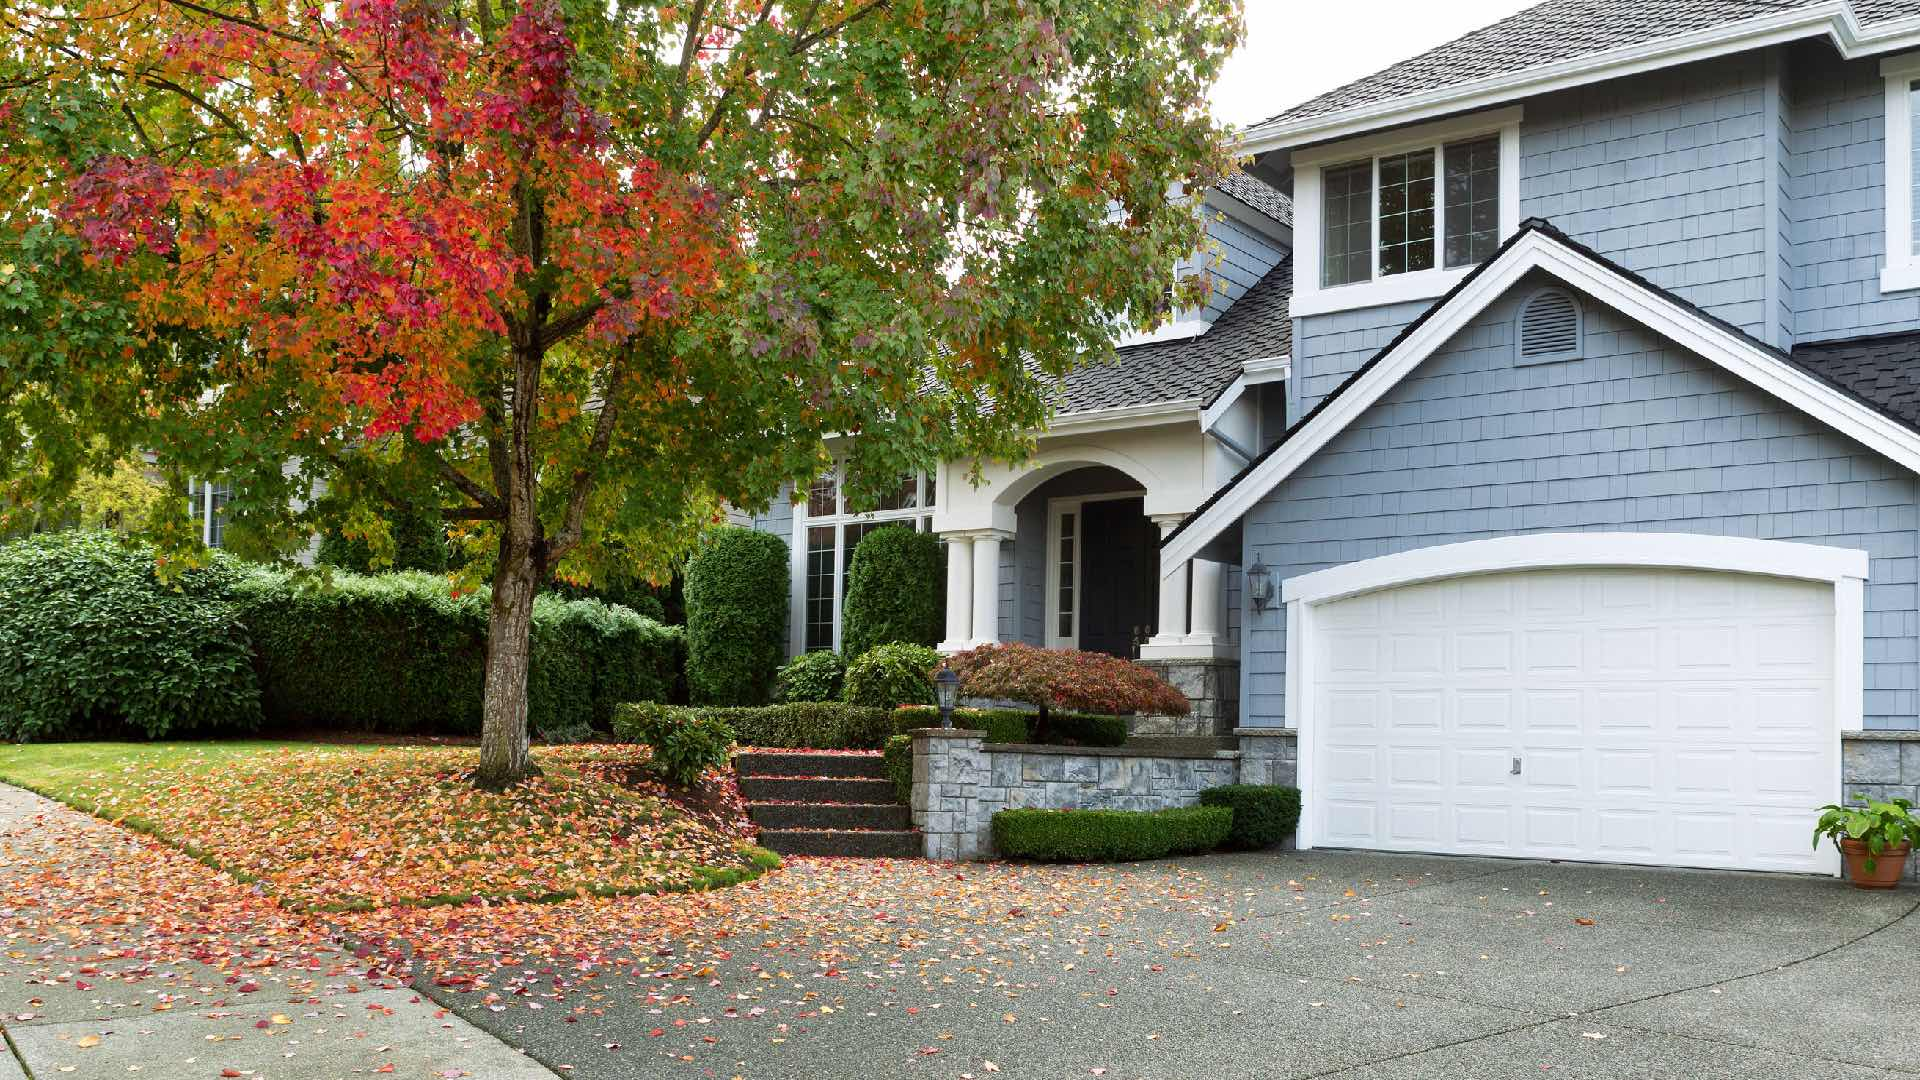 Photograph of a multi-level home with a autumn tree with leaves changing colors